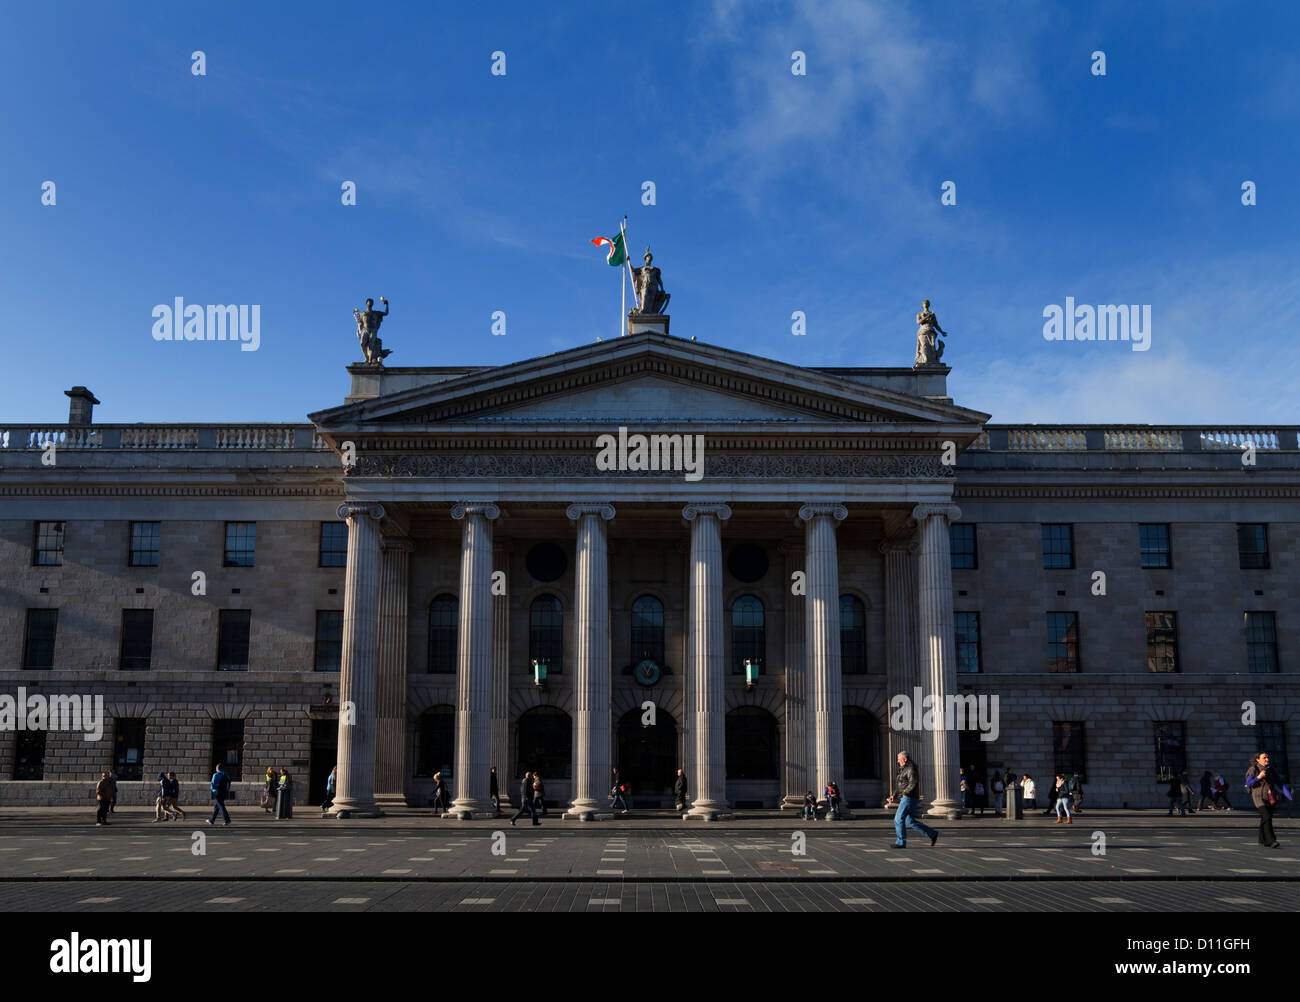 Das General Post Office (GPO) in O' Connell Street, Hauptquartier der Rebellen von 1916 Easter Rising in Dublin, Stockbild